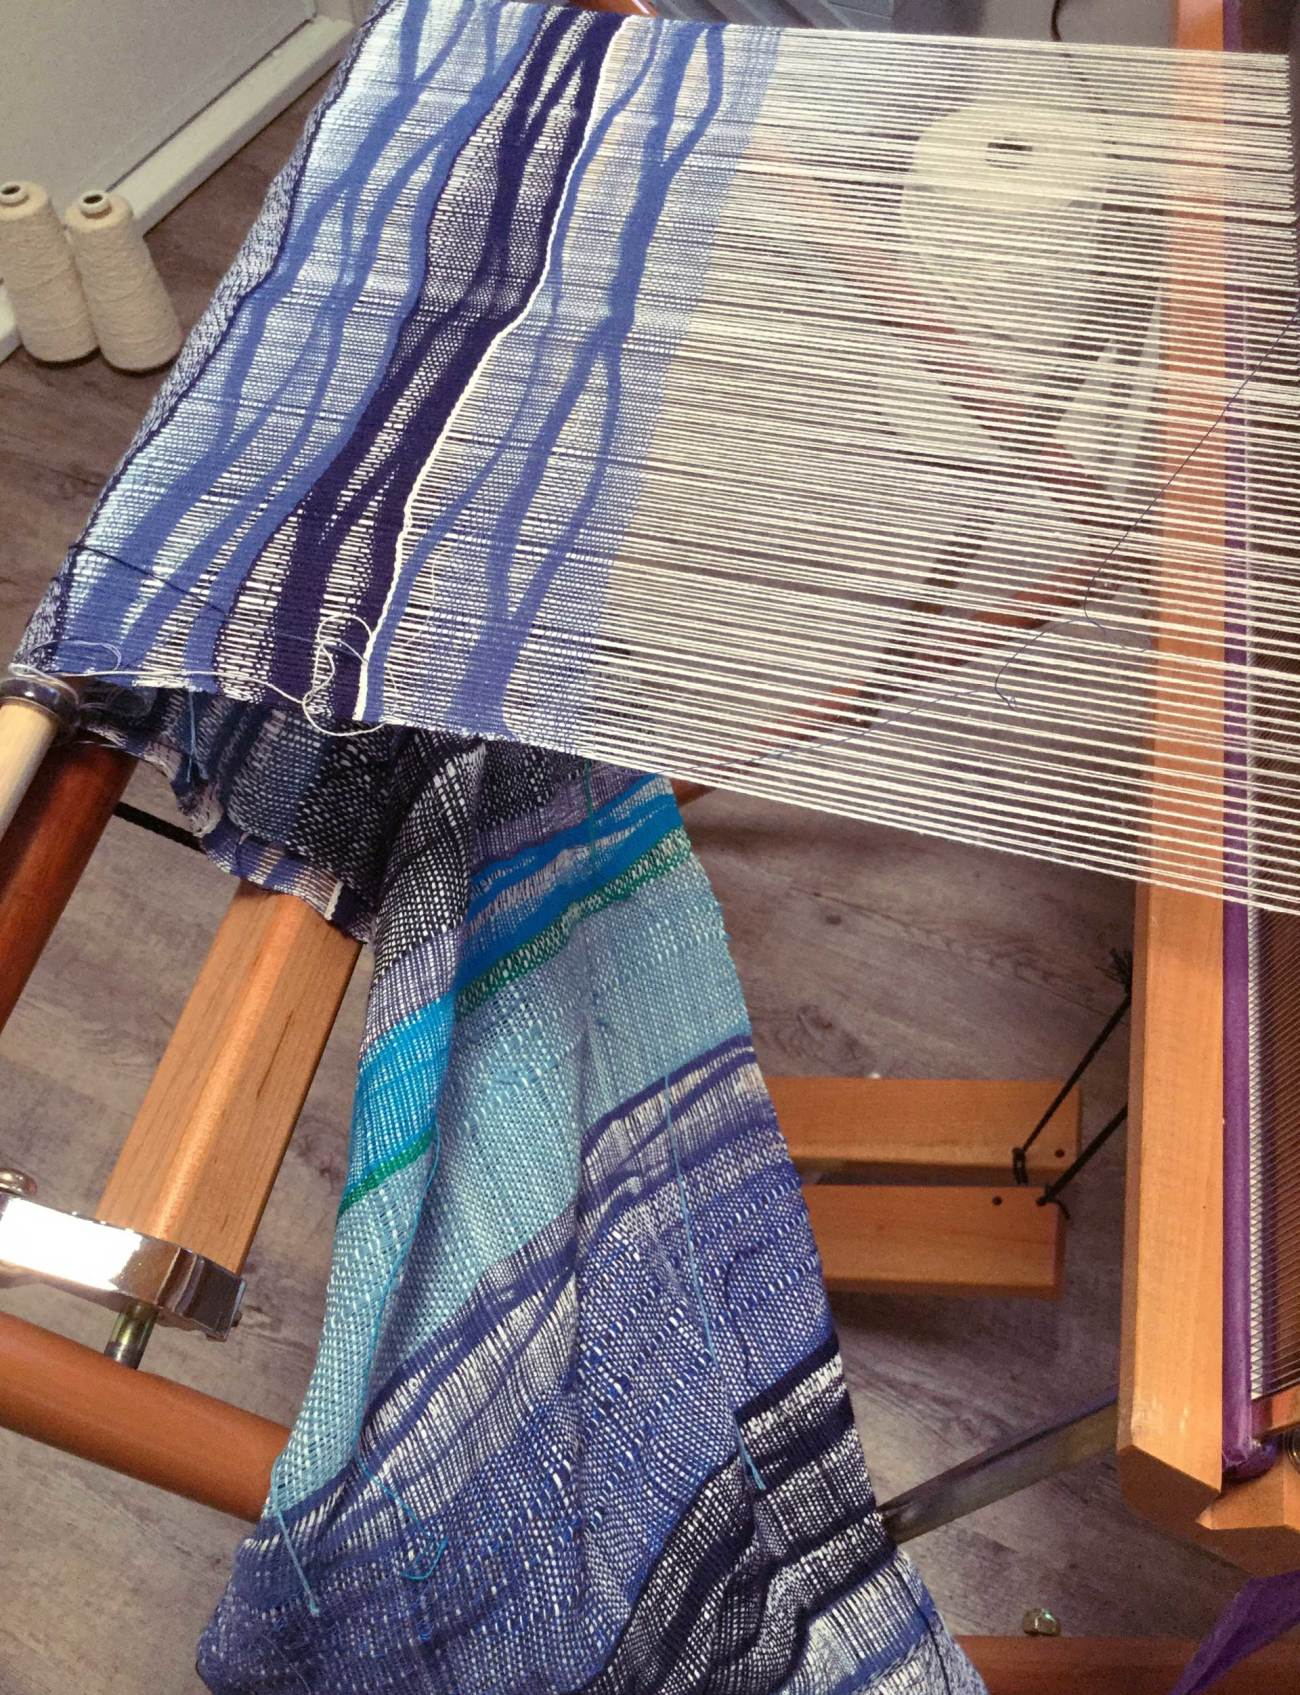 weaving-with-a-wave-stick-2